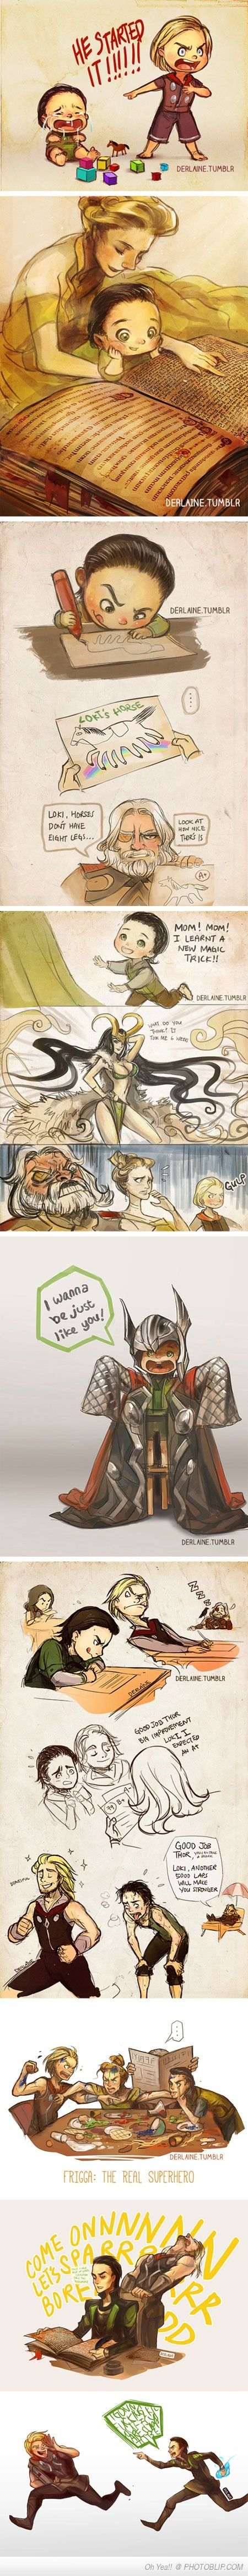 Loki's Childhood By Derlaine- I will never get enogh of baby loki and thor.------ this is the best mohdst deppresing post I have ever seen on this website.